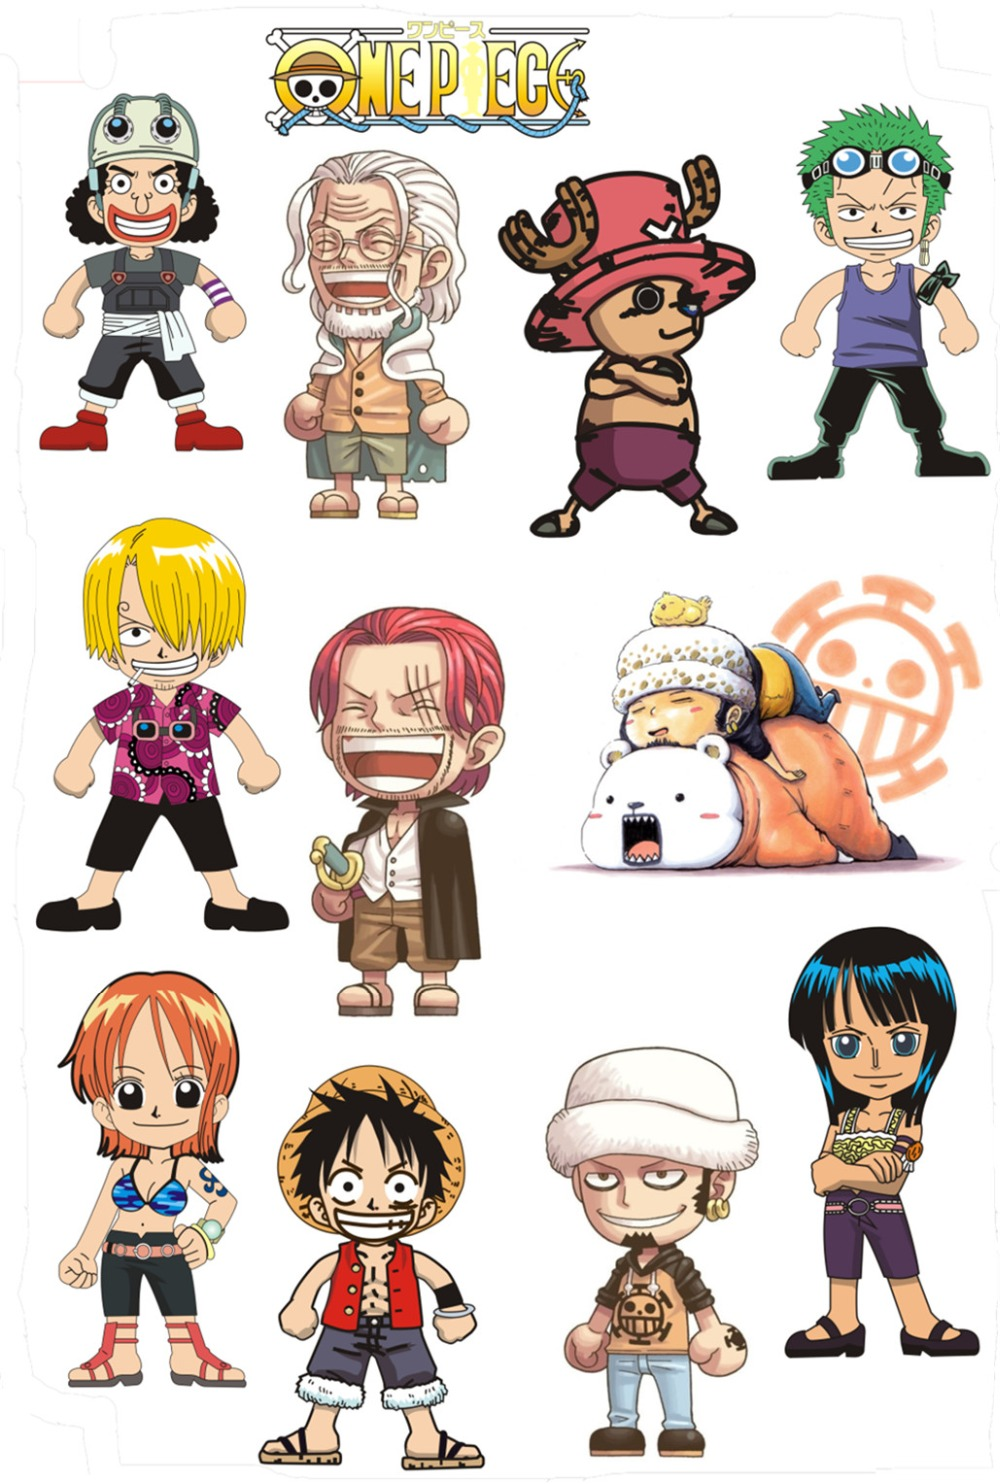 New one piece stickers ace law wall stickers suitcase fridge laptop sticker waterproof anime decal 5 sheets set